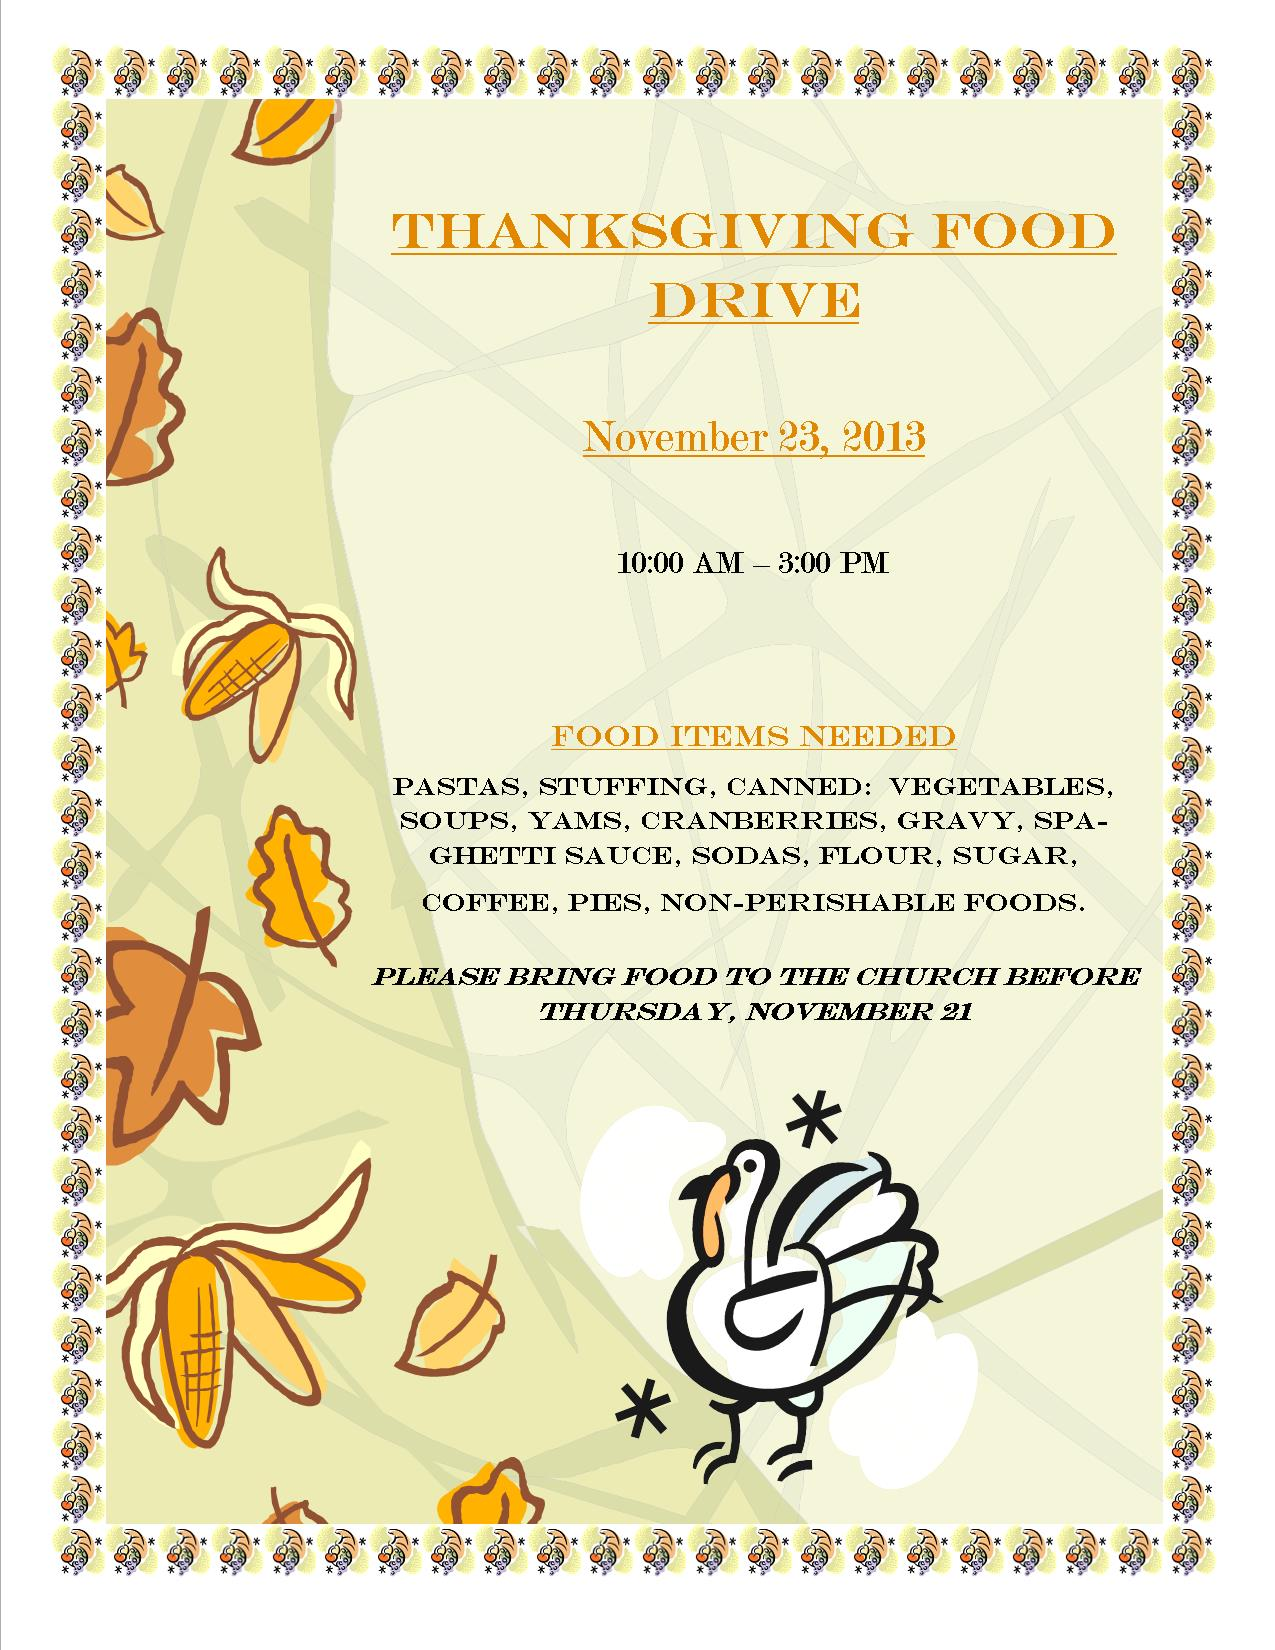 Thanksgiving Food Drive 2013 Sts Constantine Helen Cathedral – Food Drive Flyer Samples